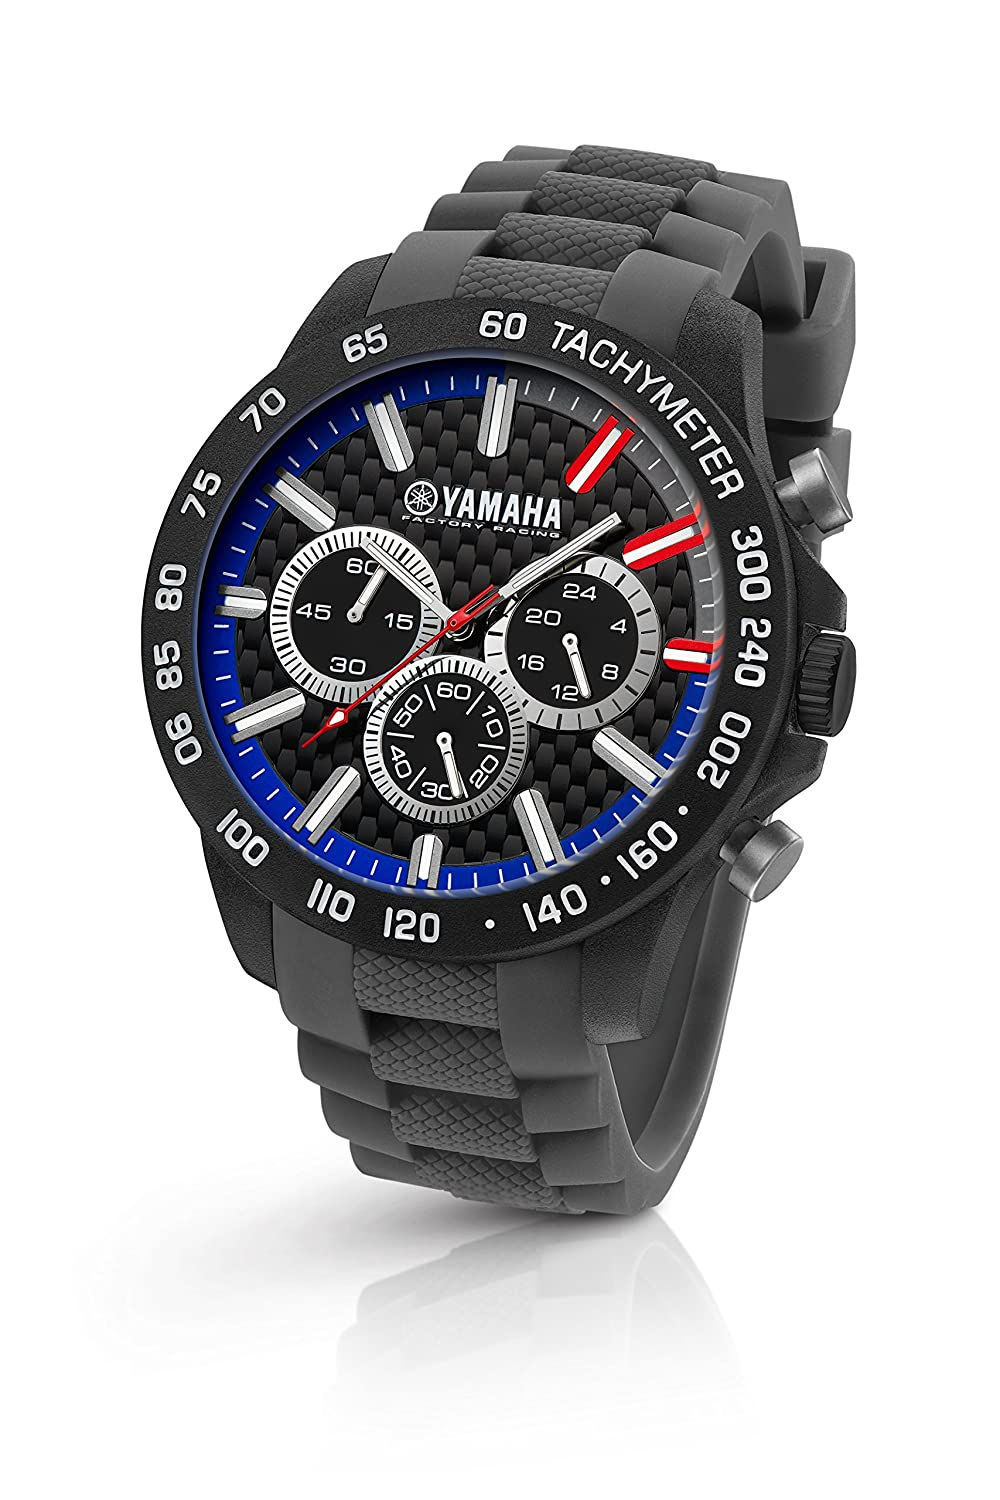 Vr46 By Tw Steel Herrenuhr Analog Quartz Silikon Grau Y114